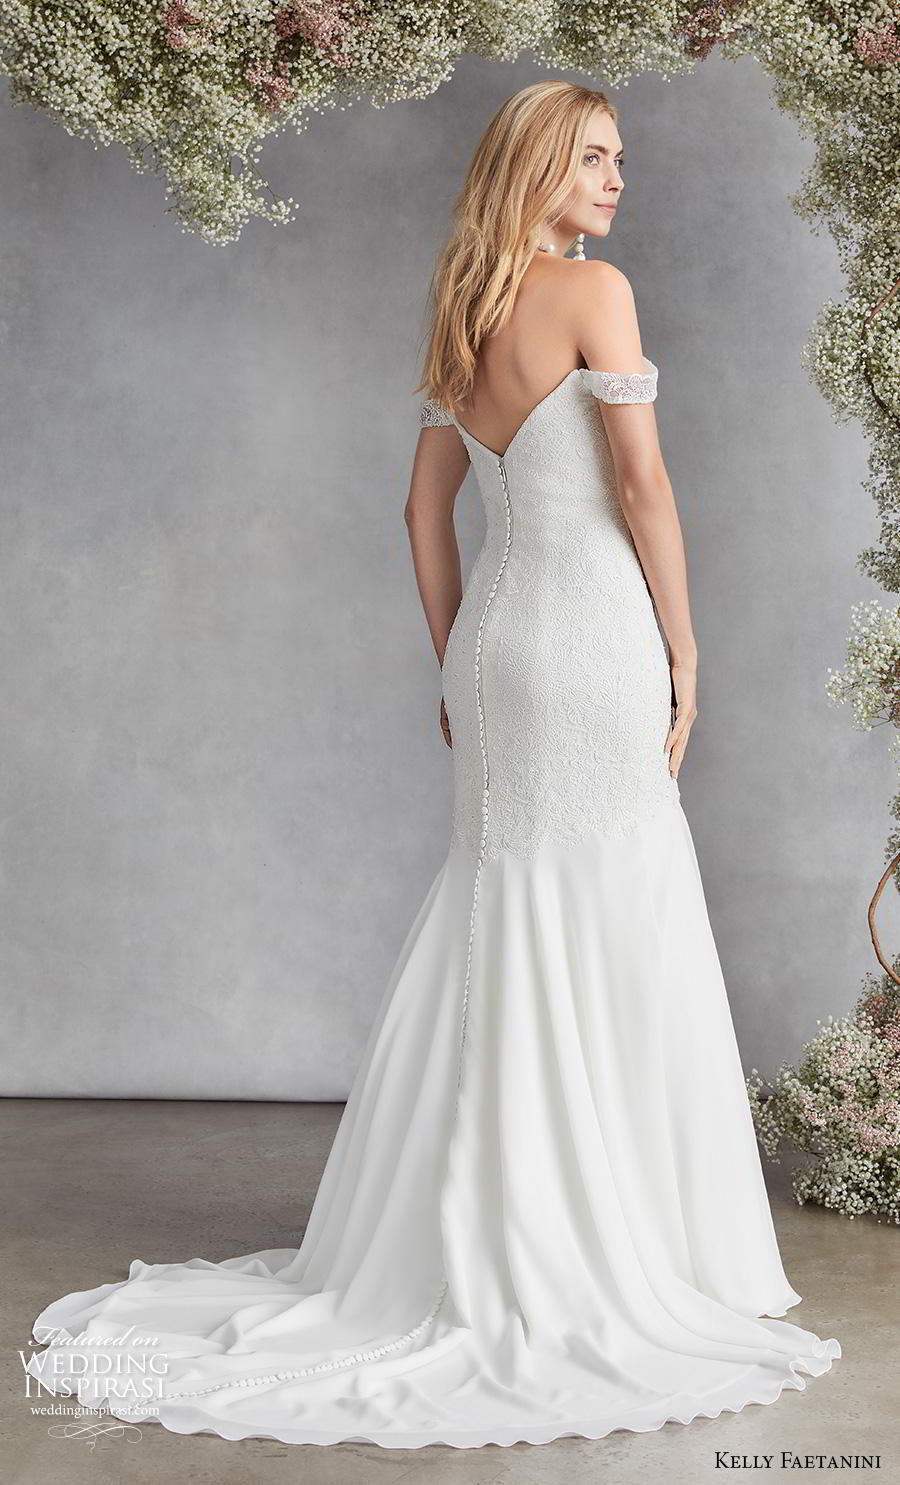 kelly faetanini fall 2020 bridal off the shoulder sweetheart neckline heavily embellished bodice romantic mermaid wedding dress mid back medium train (13) bv